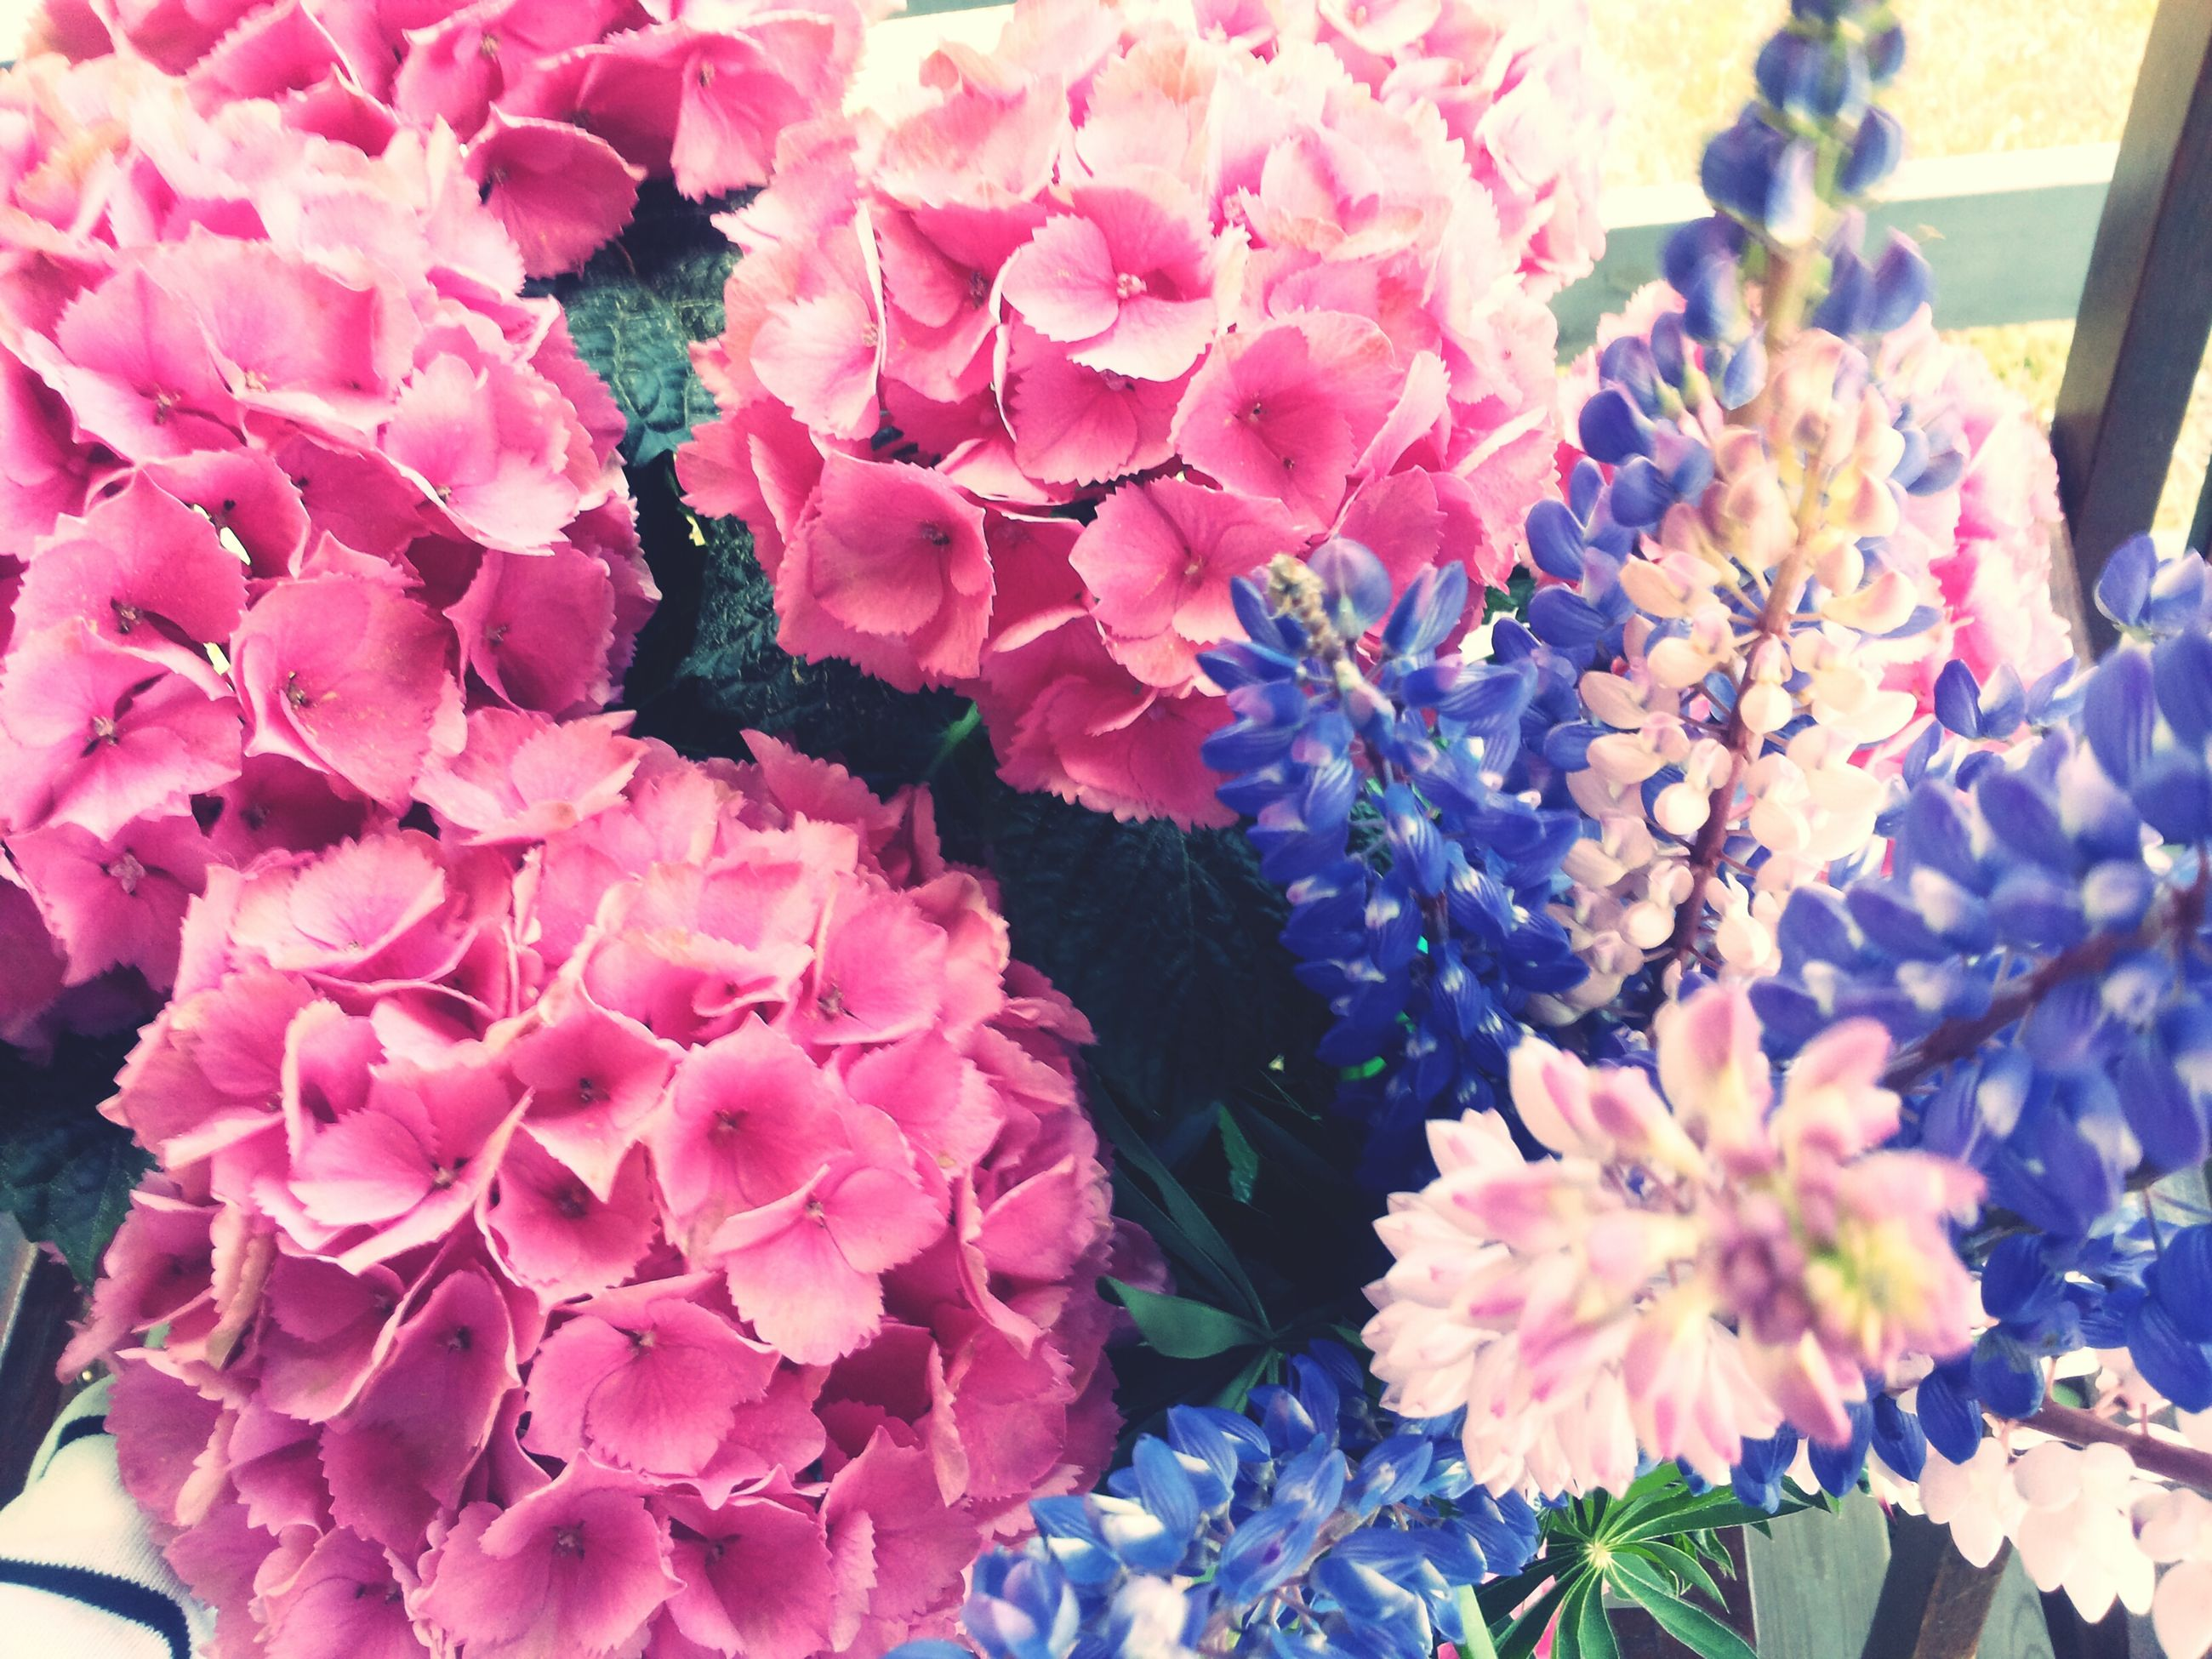 flower, freshness, petal, fragility, pink color, indoors, beauty in nature, flower head, growth, close-up, nature, high angle view, plant, bunch of flowers, blooming, abundance, bouquet, no people, decoration, day